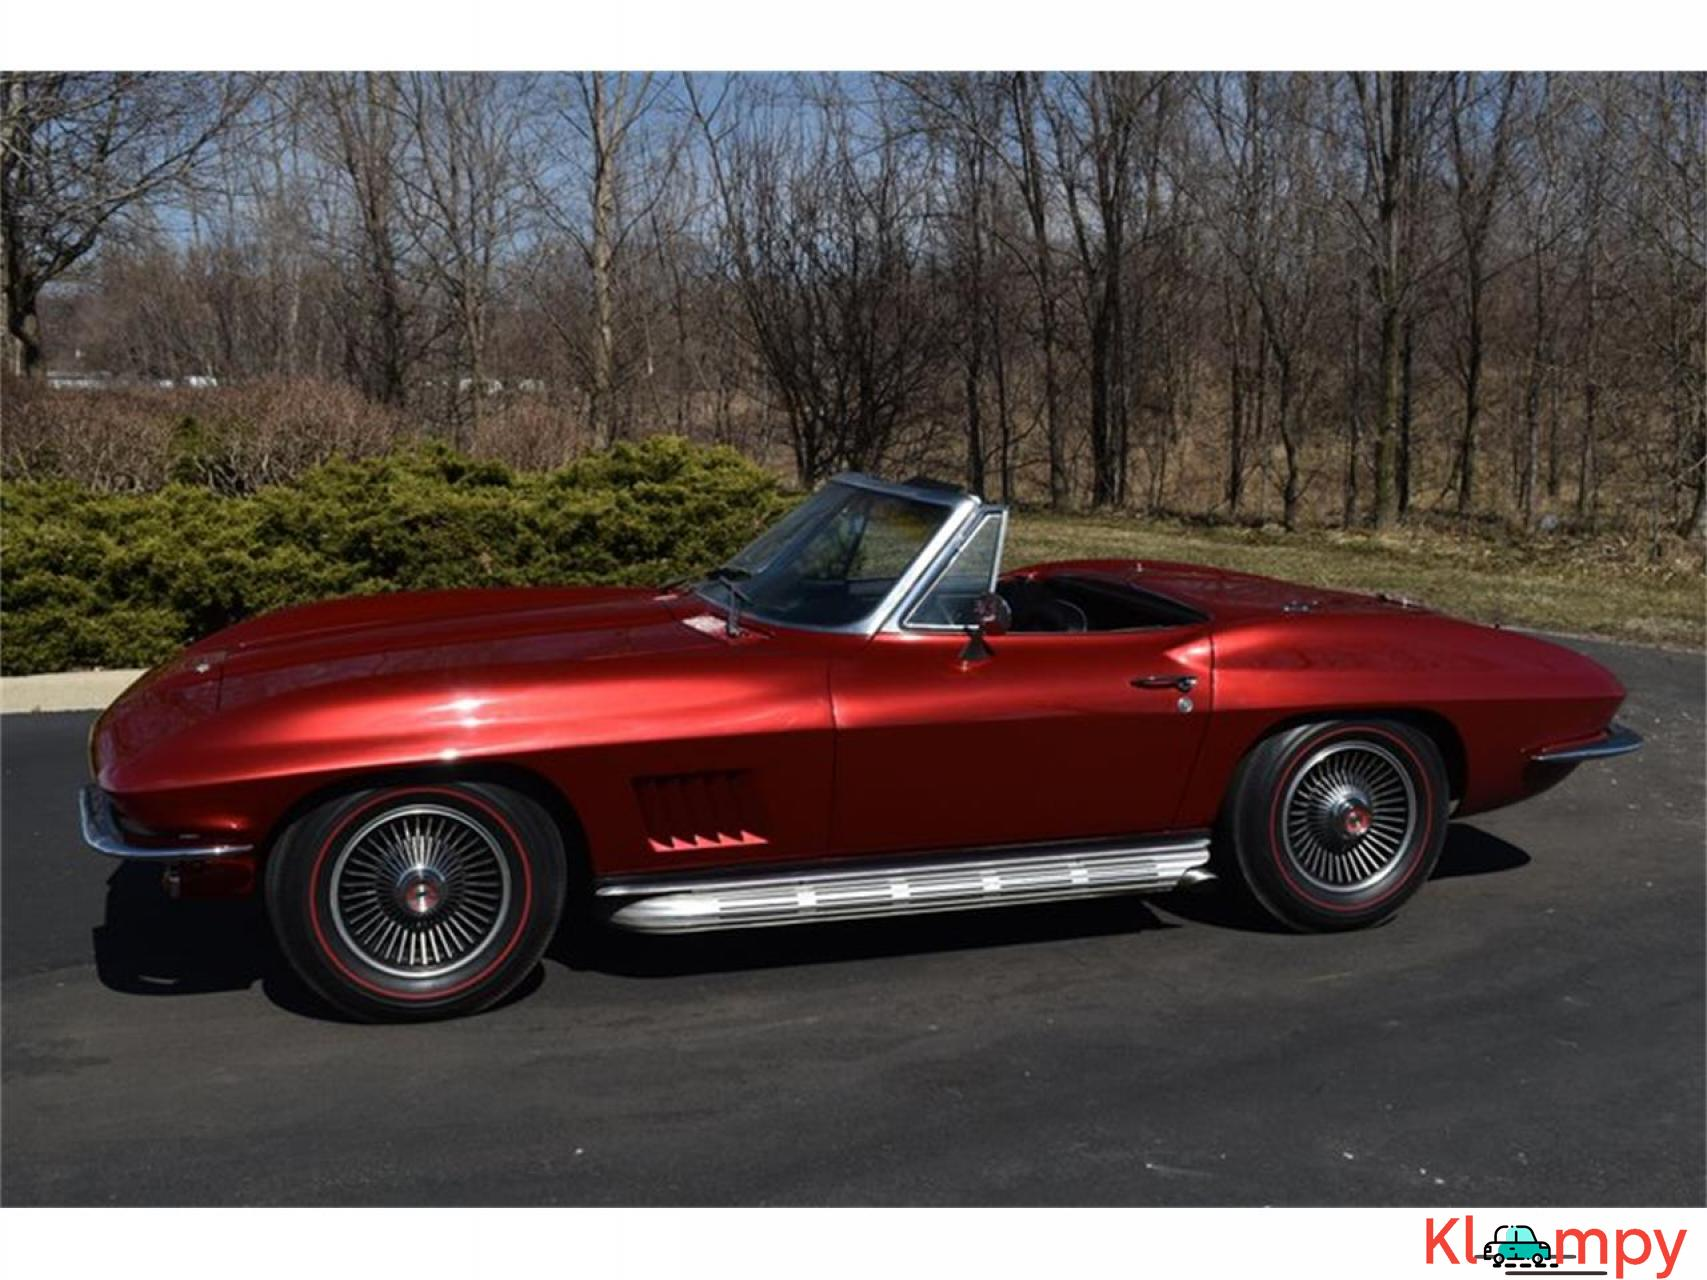 1967 Chevrolet Corvette 350HP 327 Cu In V8 - 18/20